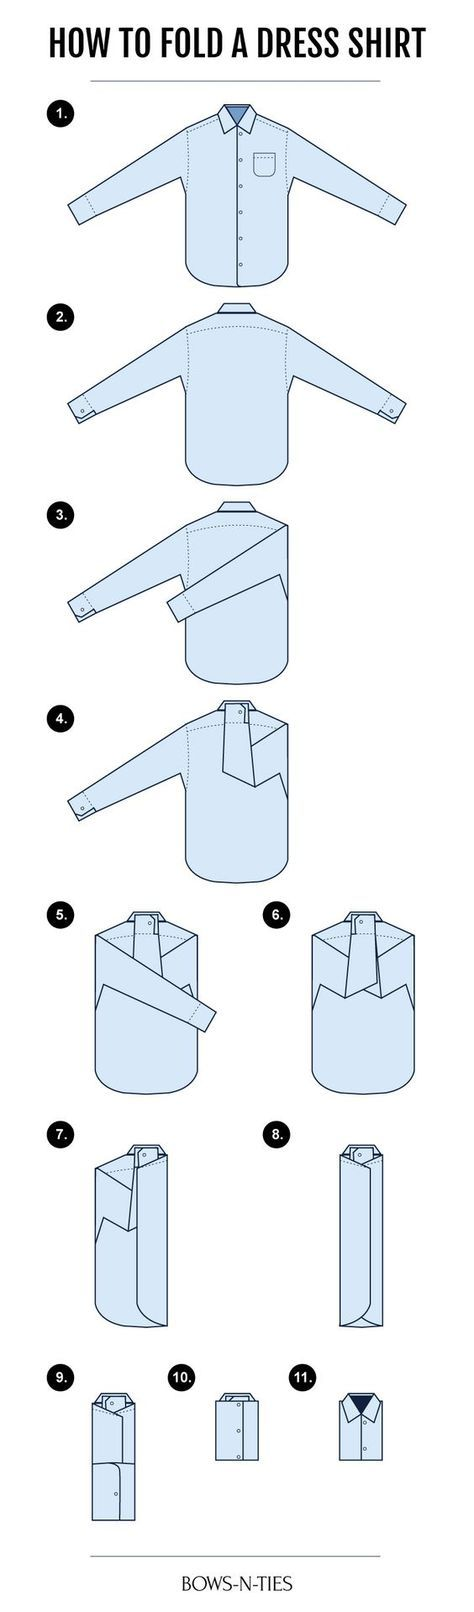 How To Pack a Suit Case For Business Trips | Bows-N-Ties.com